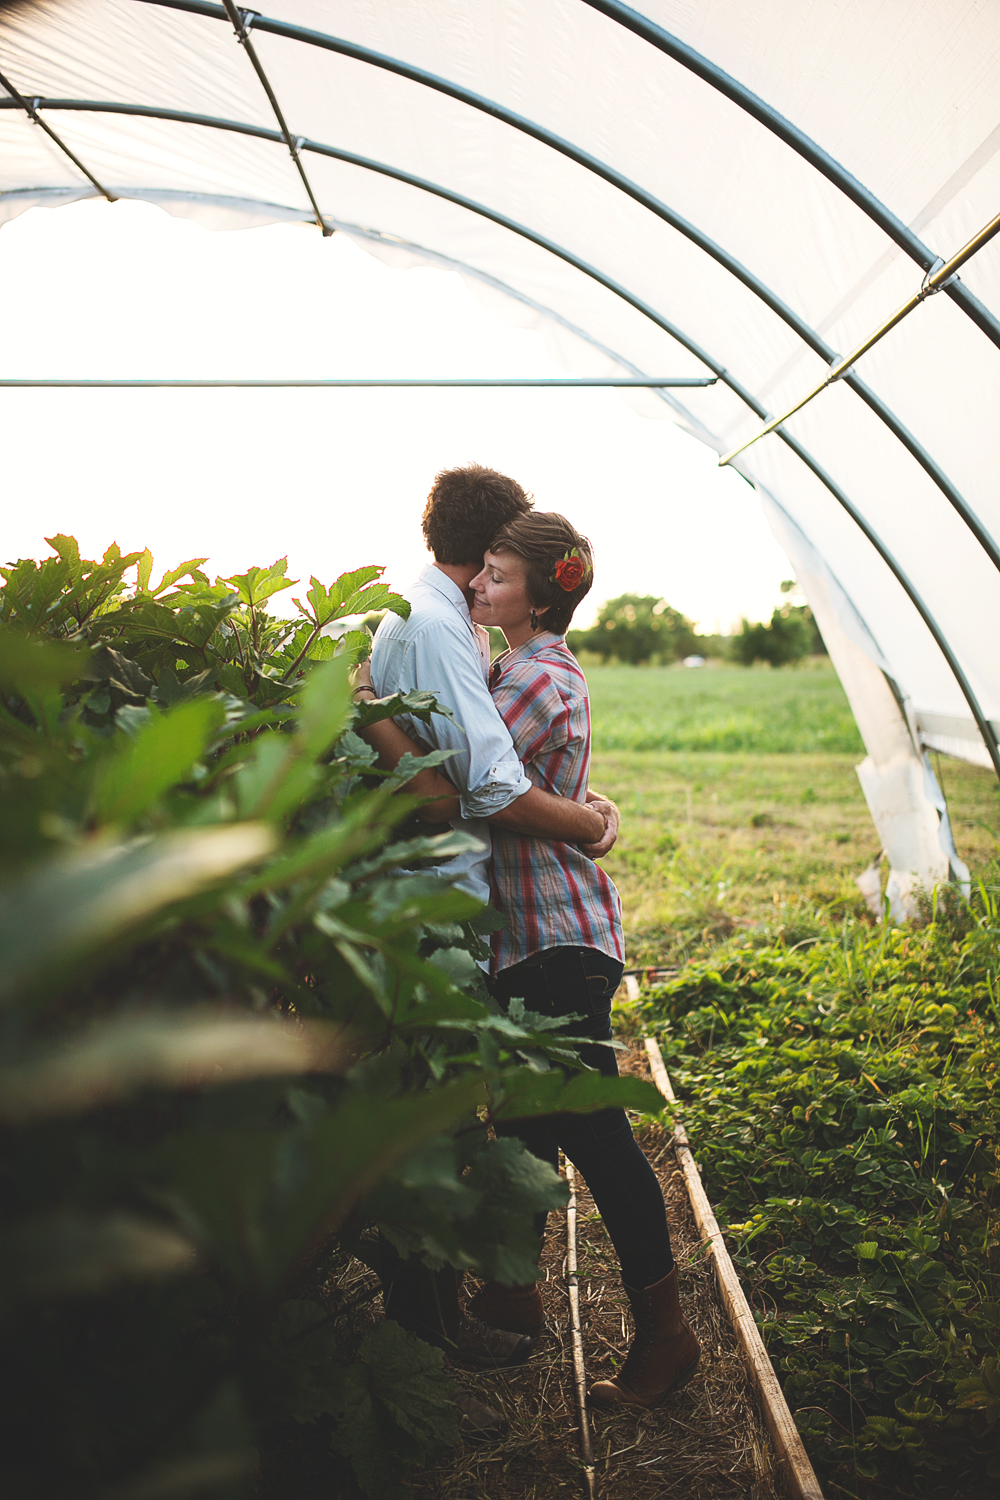 Kemper + Beth | Farm Engagement Session | Albuquerque, New Mexico | Liz Anne Photography 34.jpg